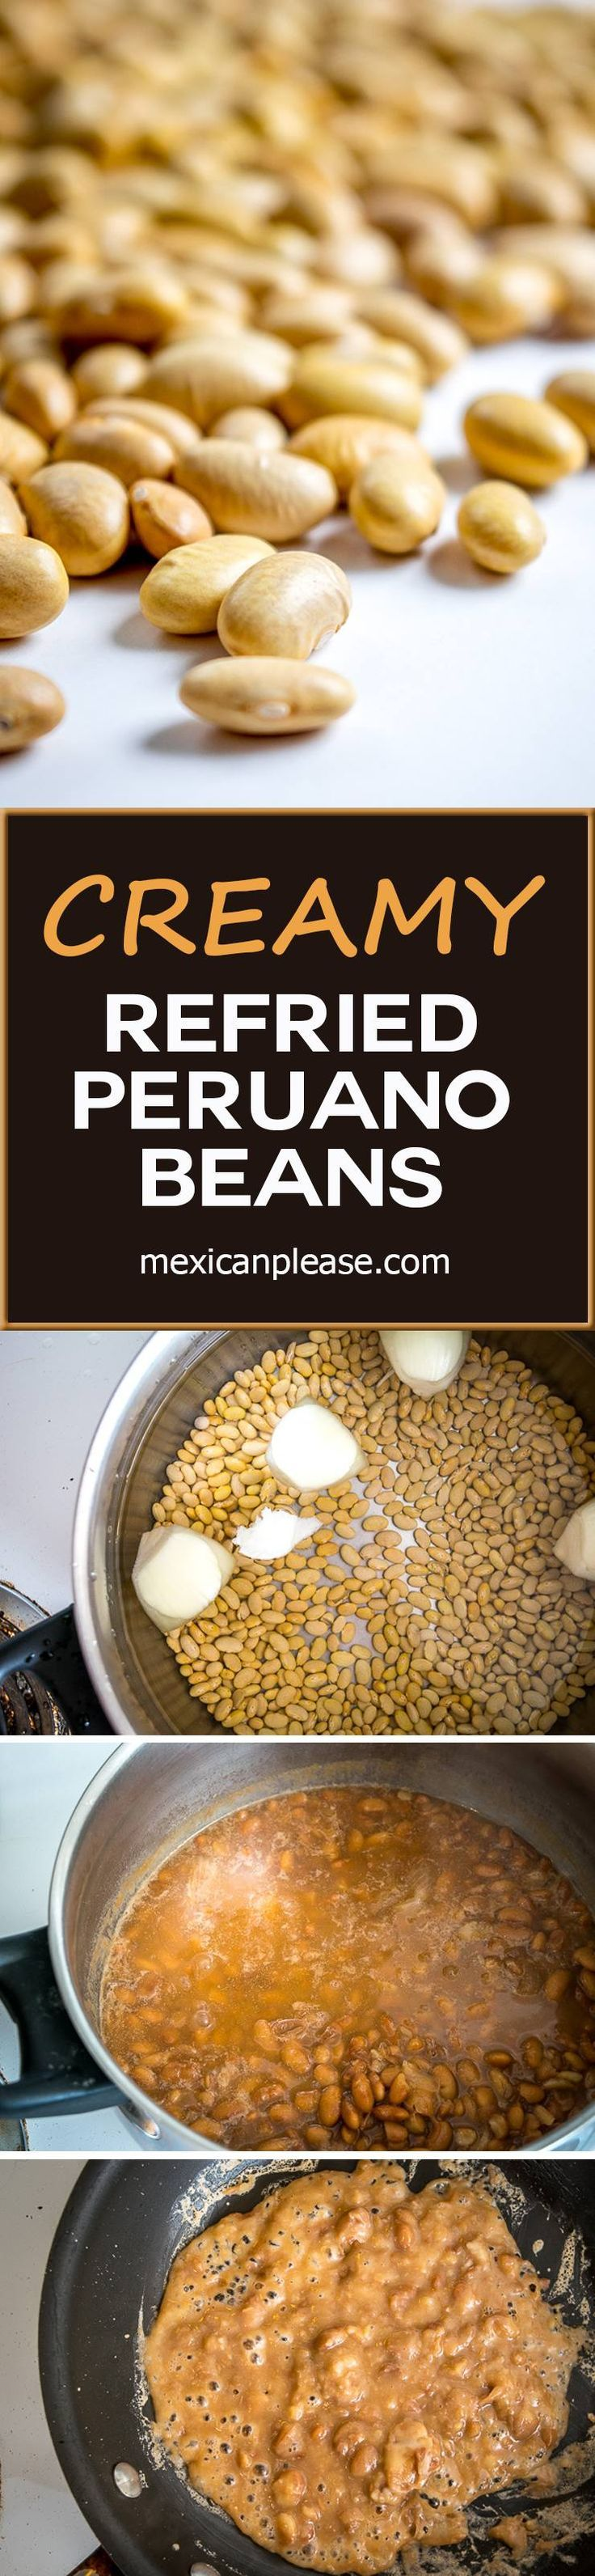 Once you try refried beans using Peruano beans you might never go back to Pinto beans!  Creamy, delicious, and easy to make!  http://mexicanplease.com